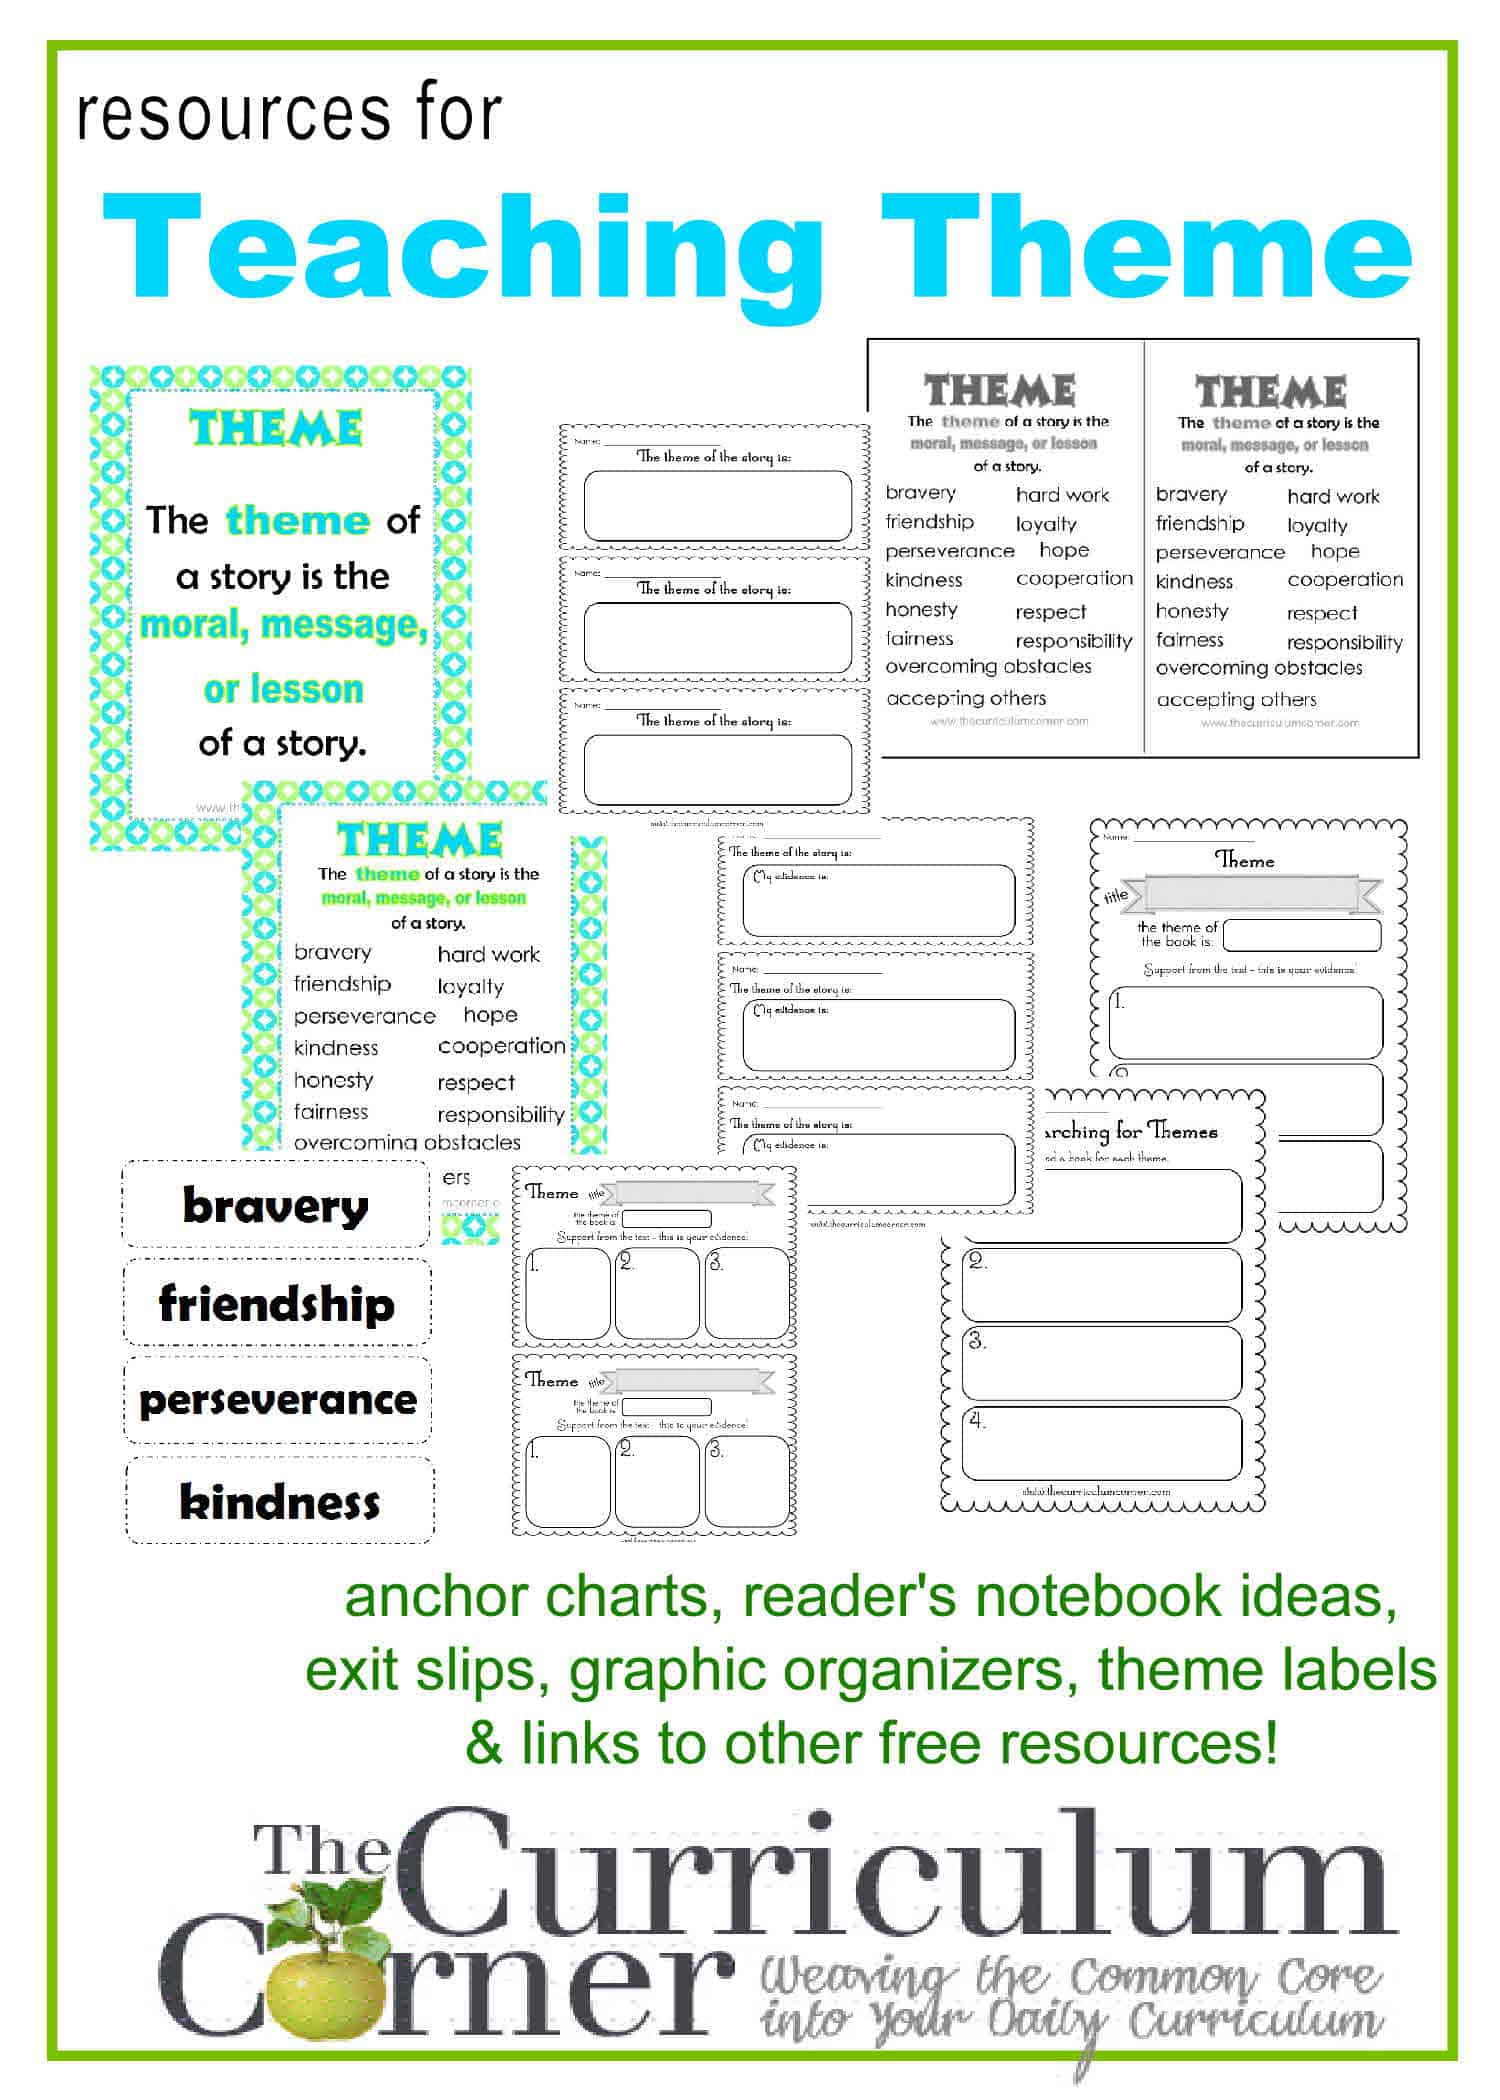 Finding The Theme Of A Story Worksheets Letravideoclip – Worksheets on Theme